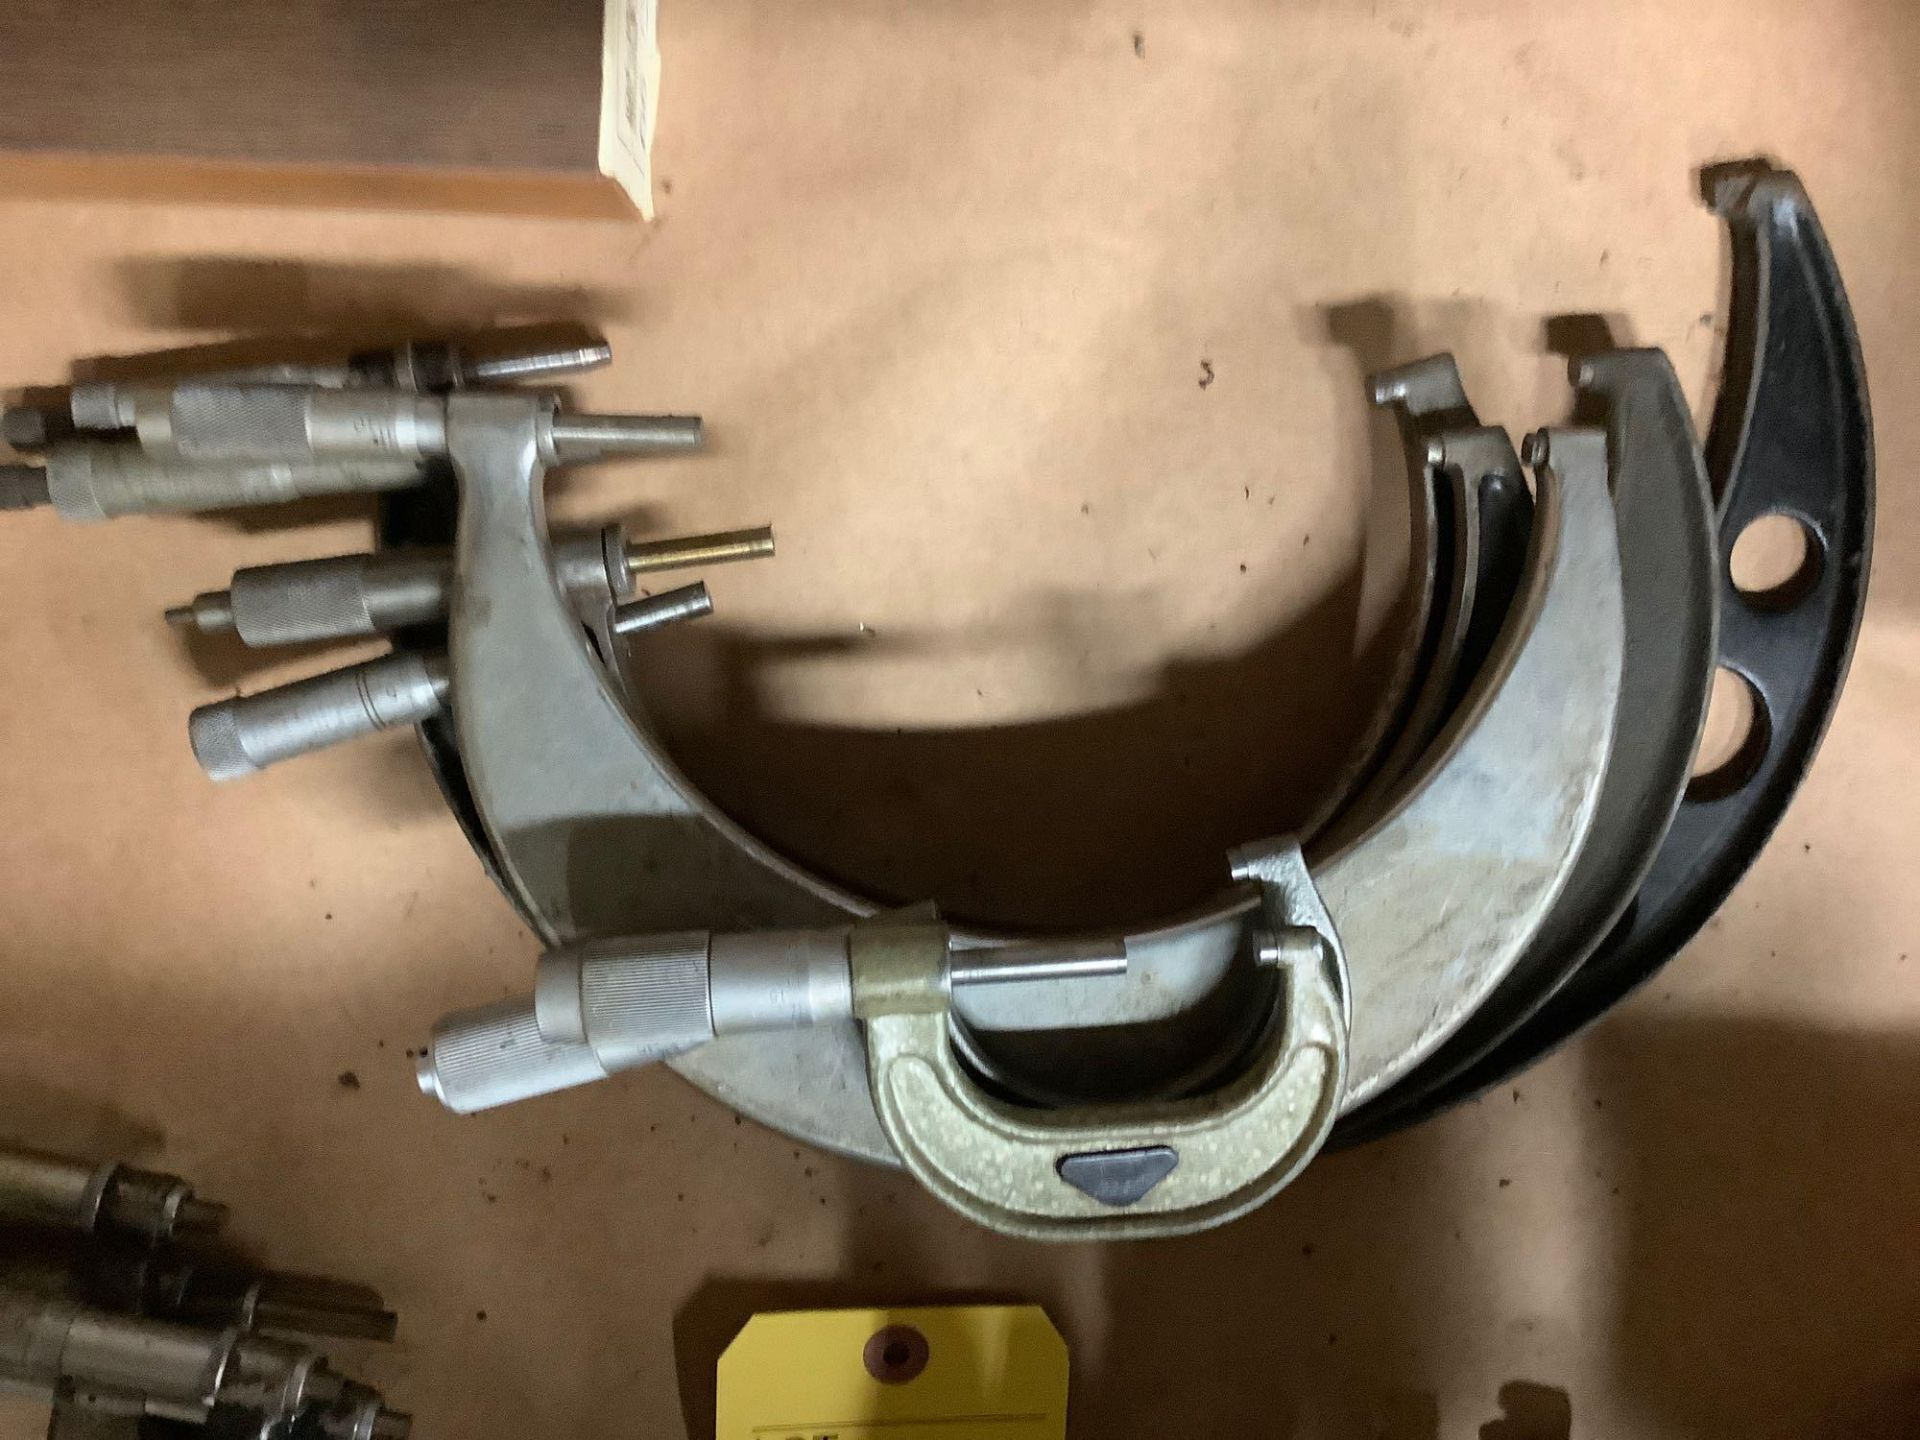 Lot of OD Micrometers, Assorted Brands and Sizes - Image 2 of 3